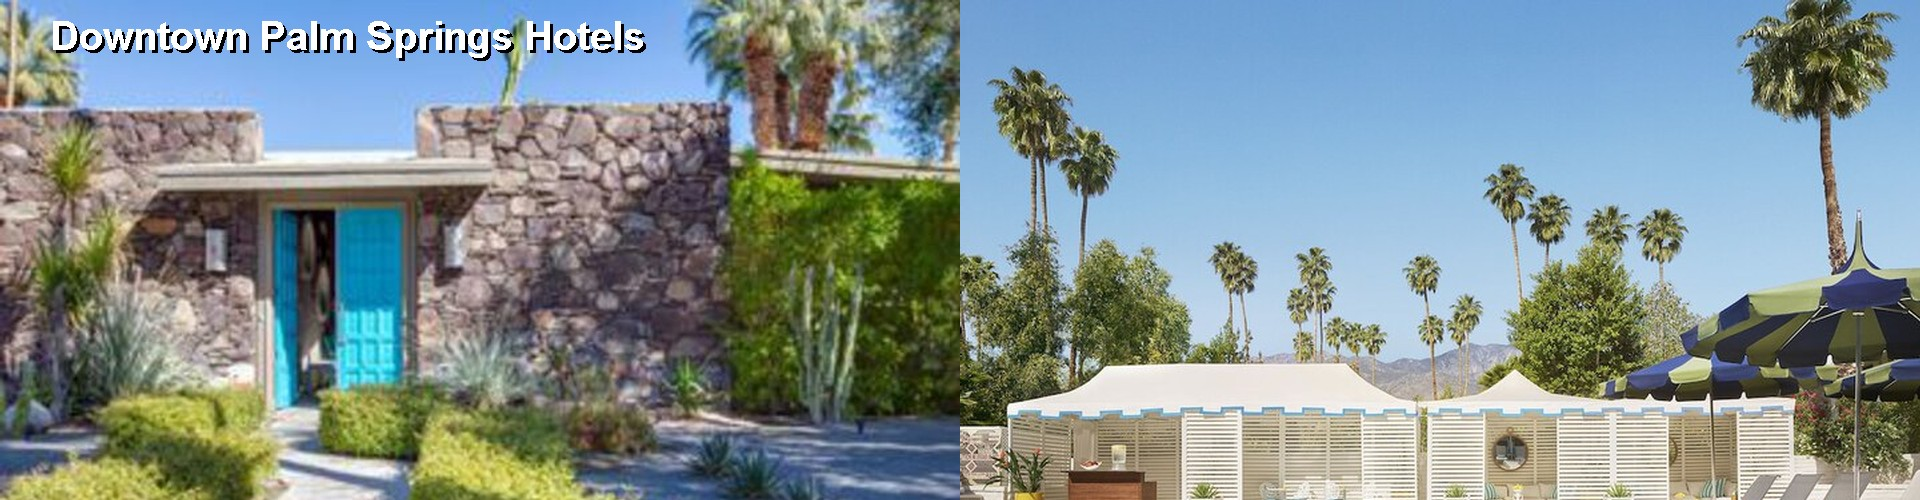 5 Best Hotels near Downtown Palm Springs